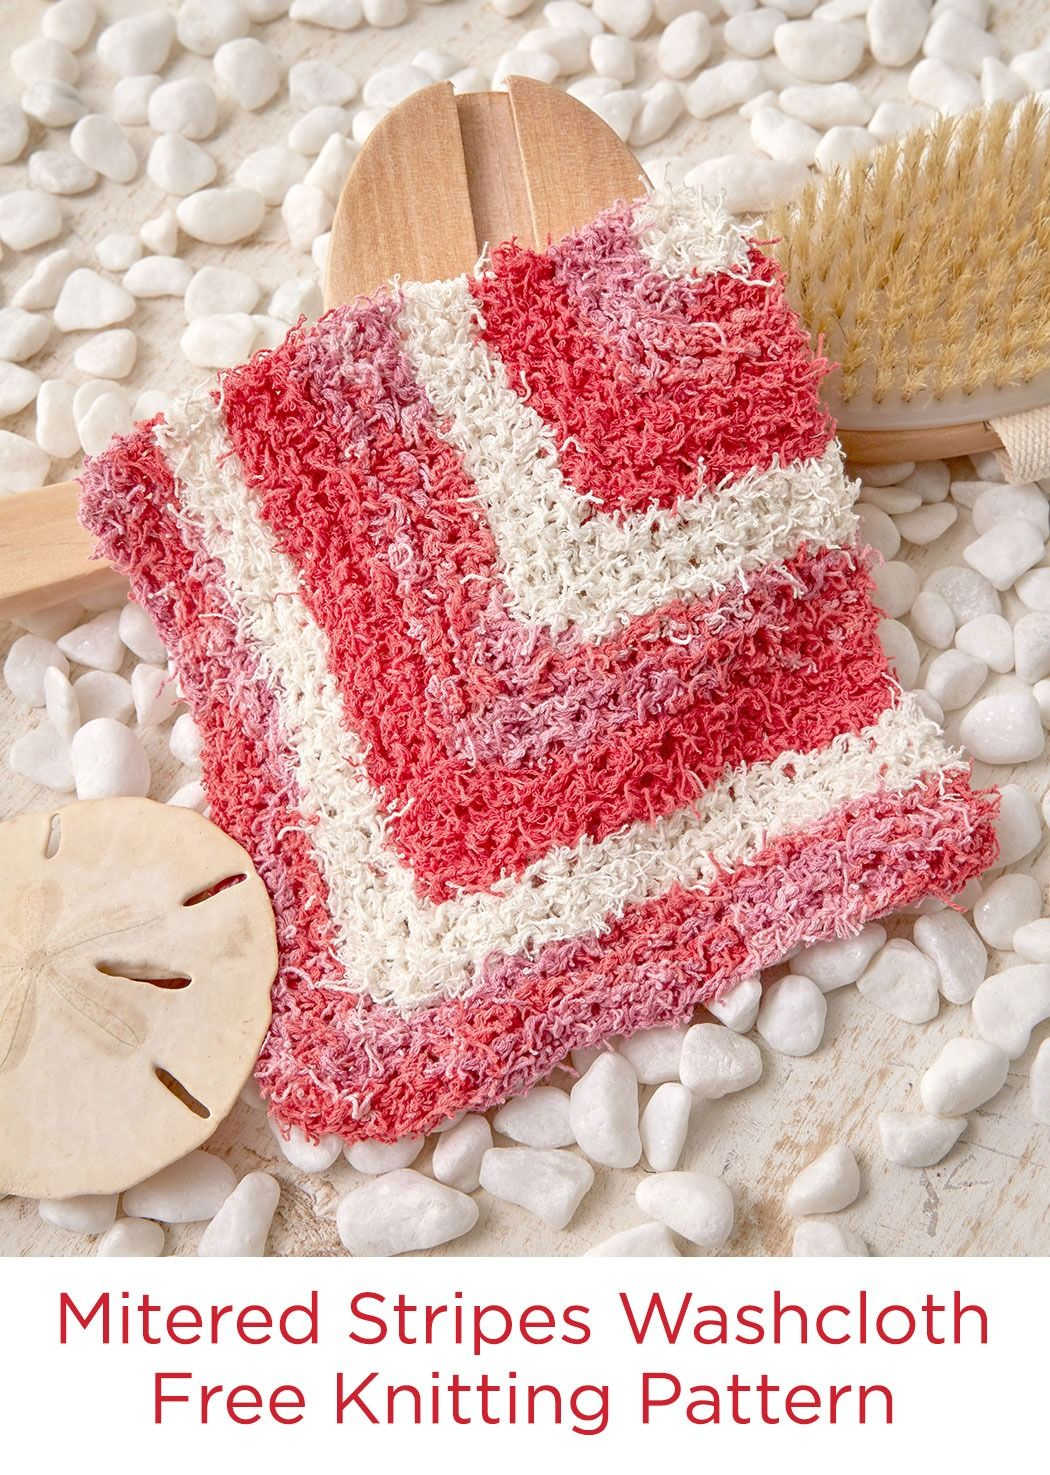 Mitered Stripes Washcloth Free Knitting Pattern in Red Heart Scrubby ...